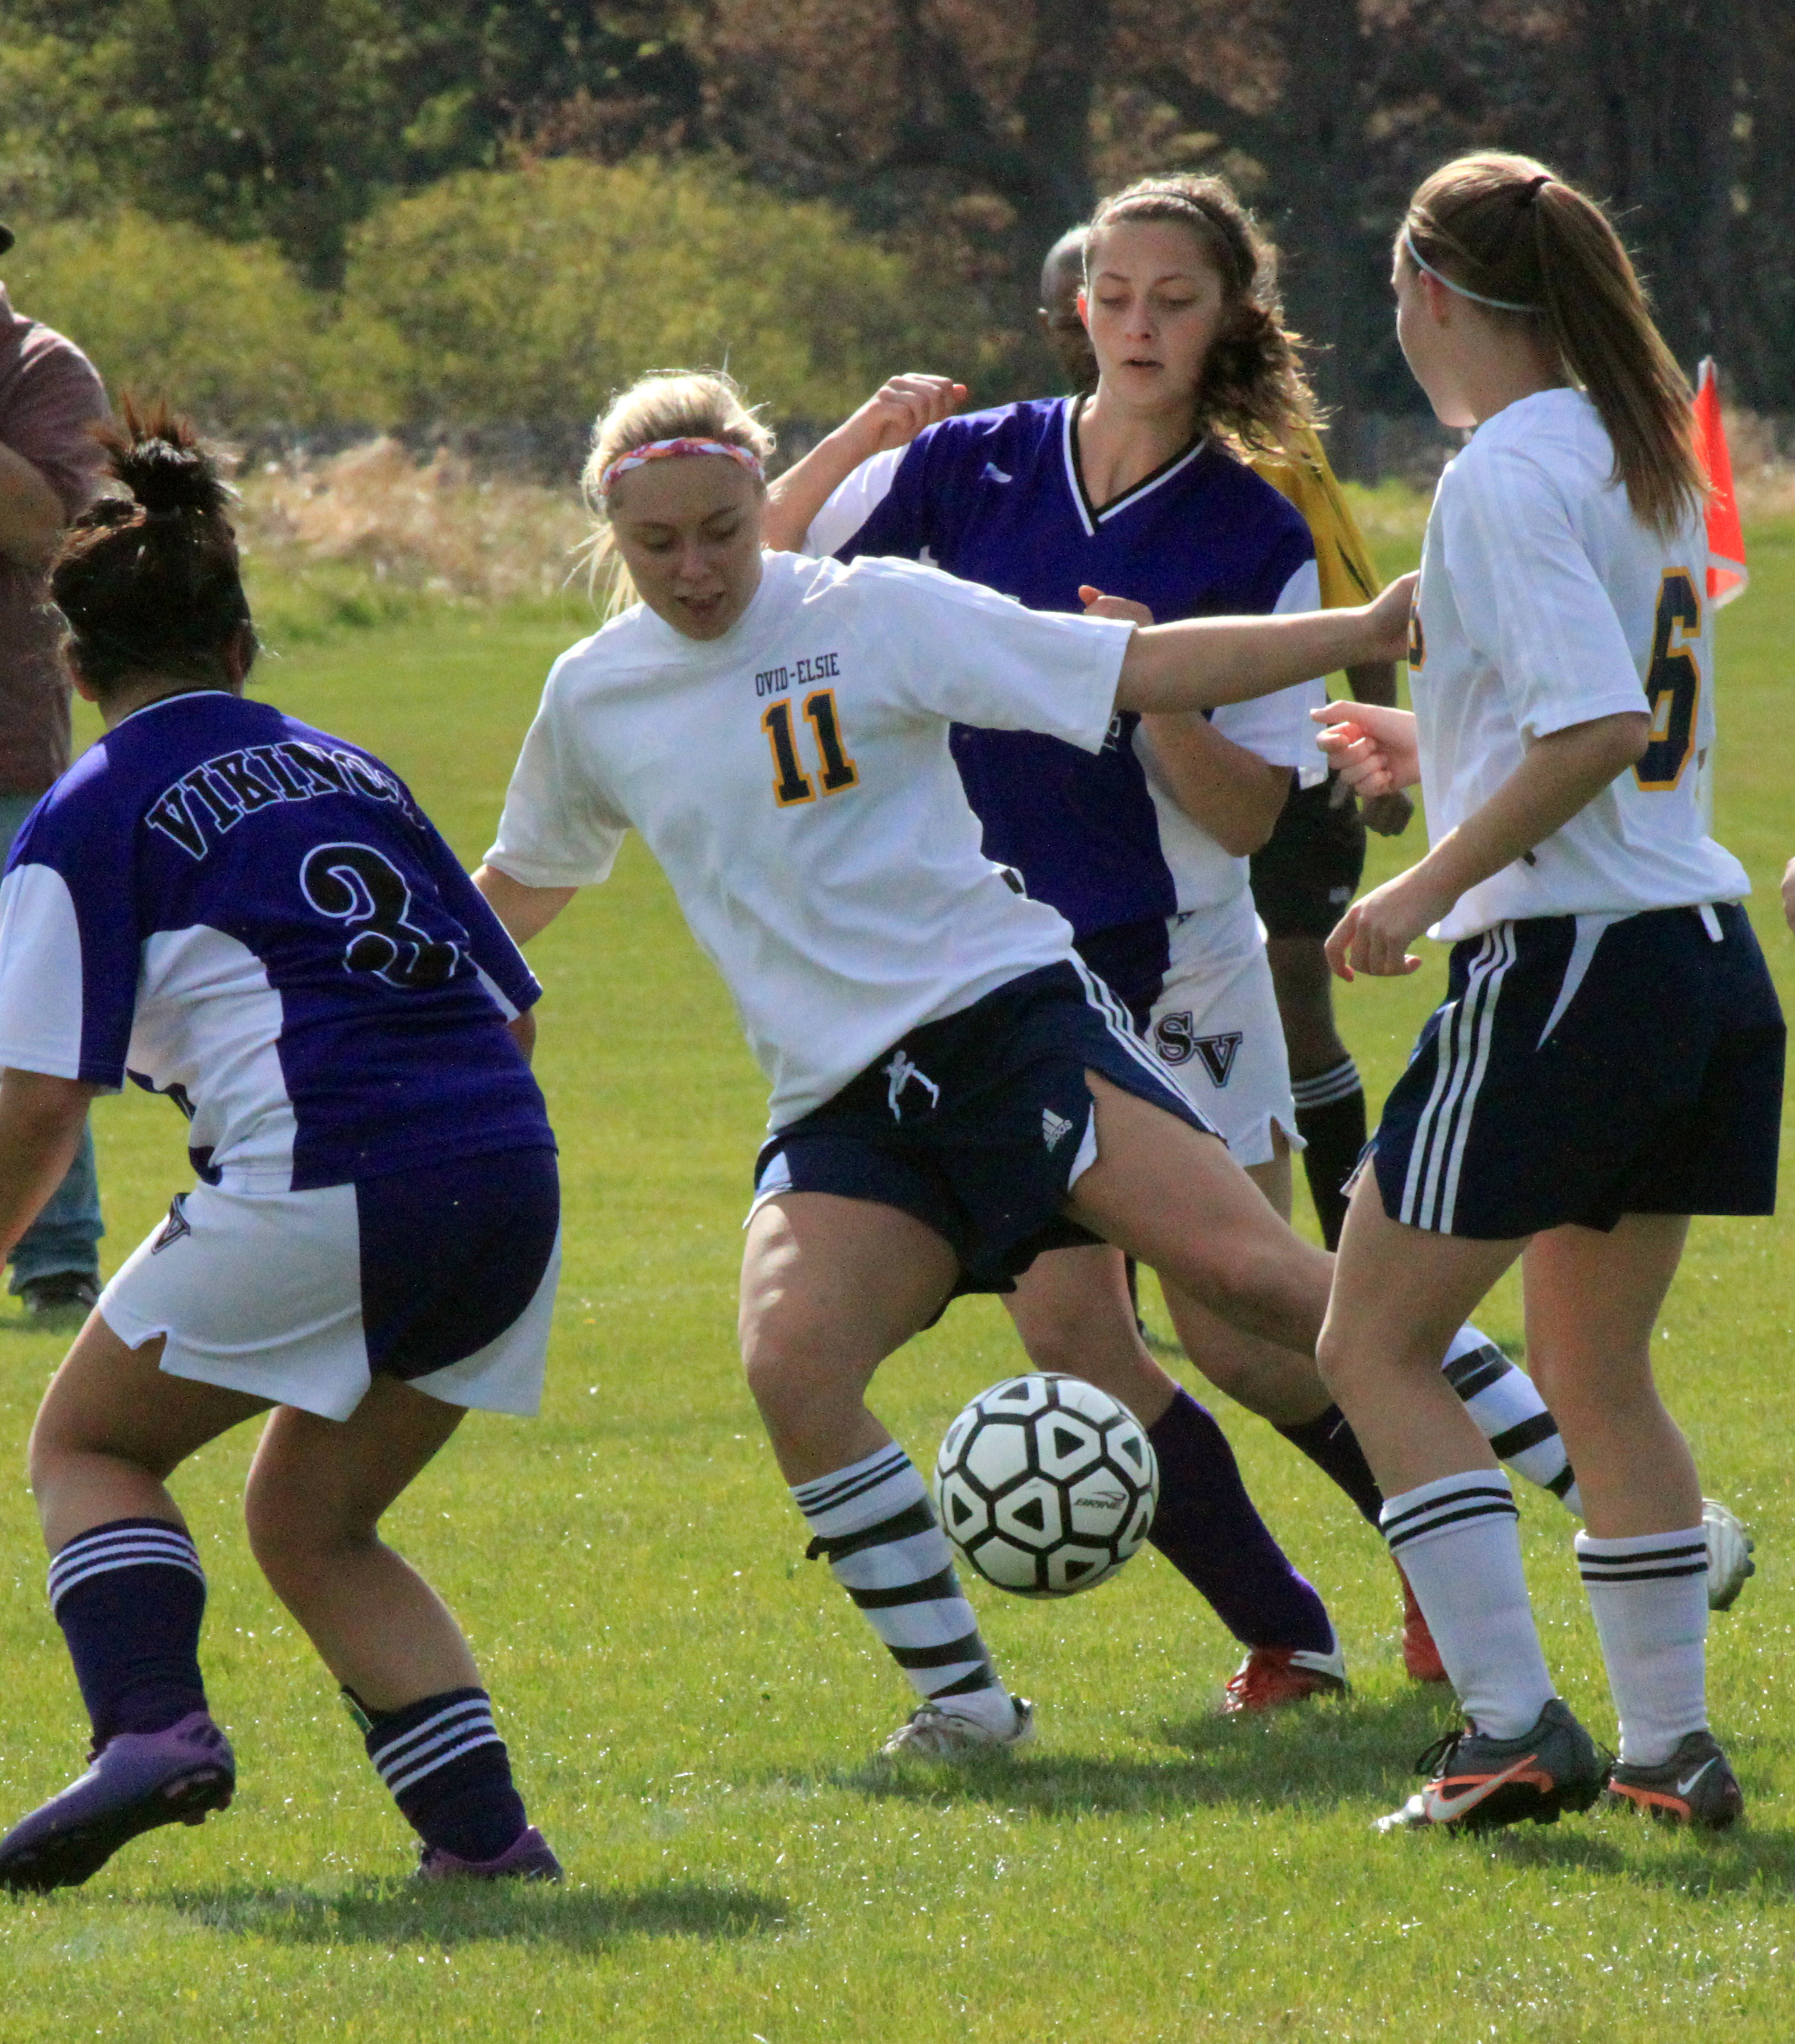 Junior Mya Hall defends against players from Swan Valley. Photo by Taylor Bebow.